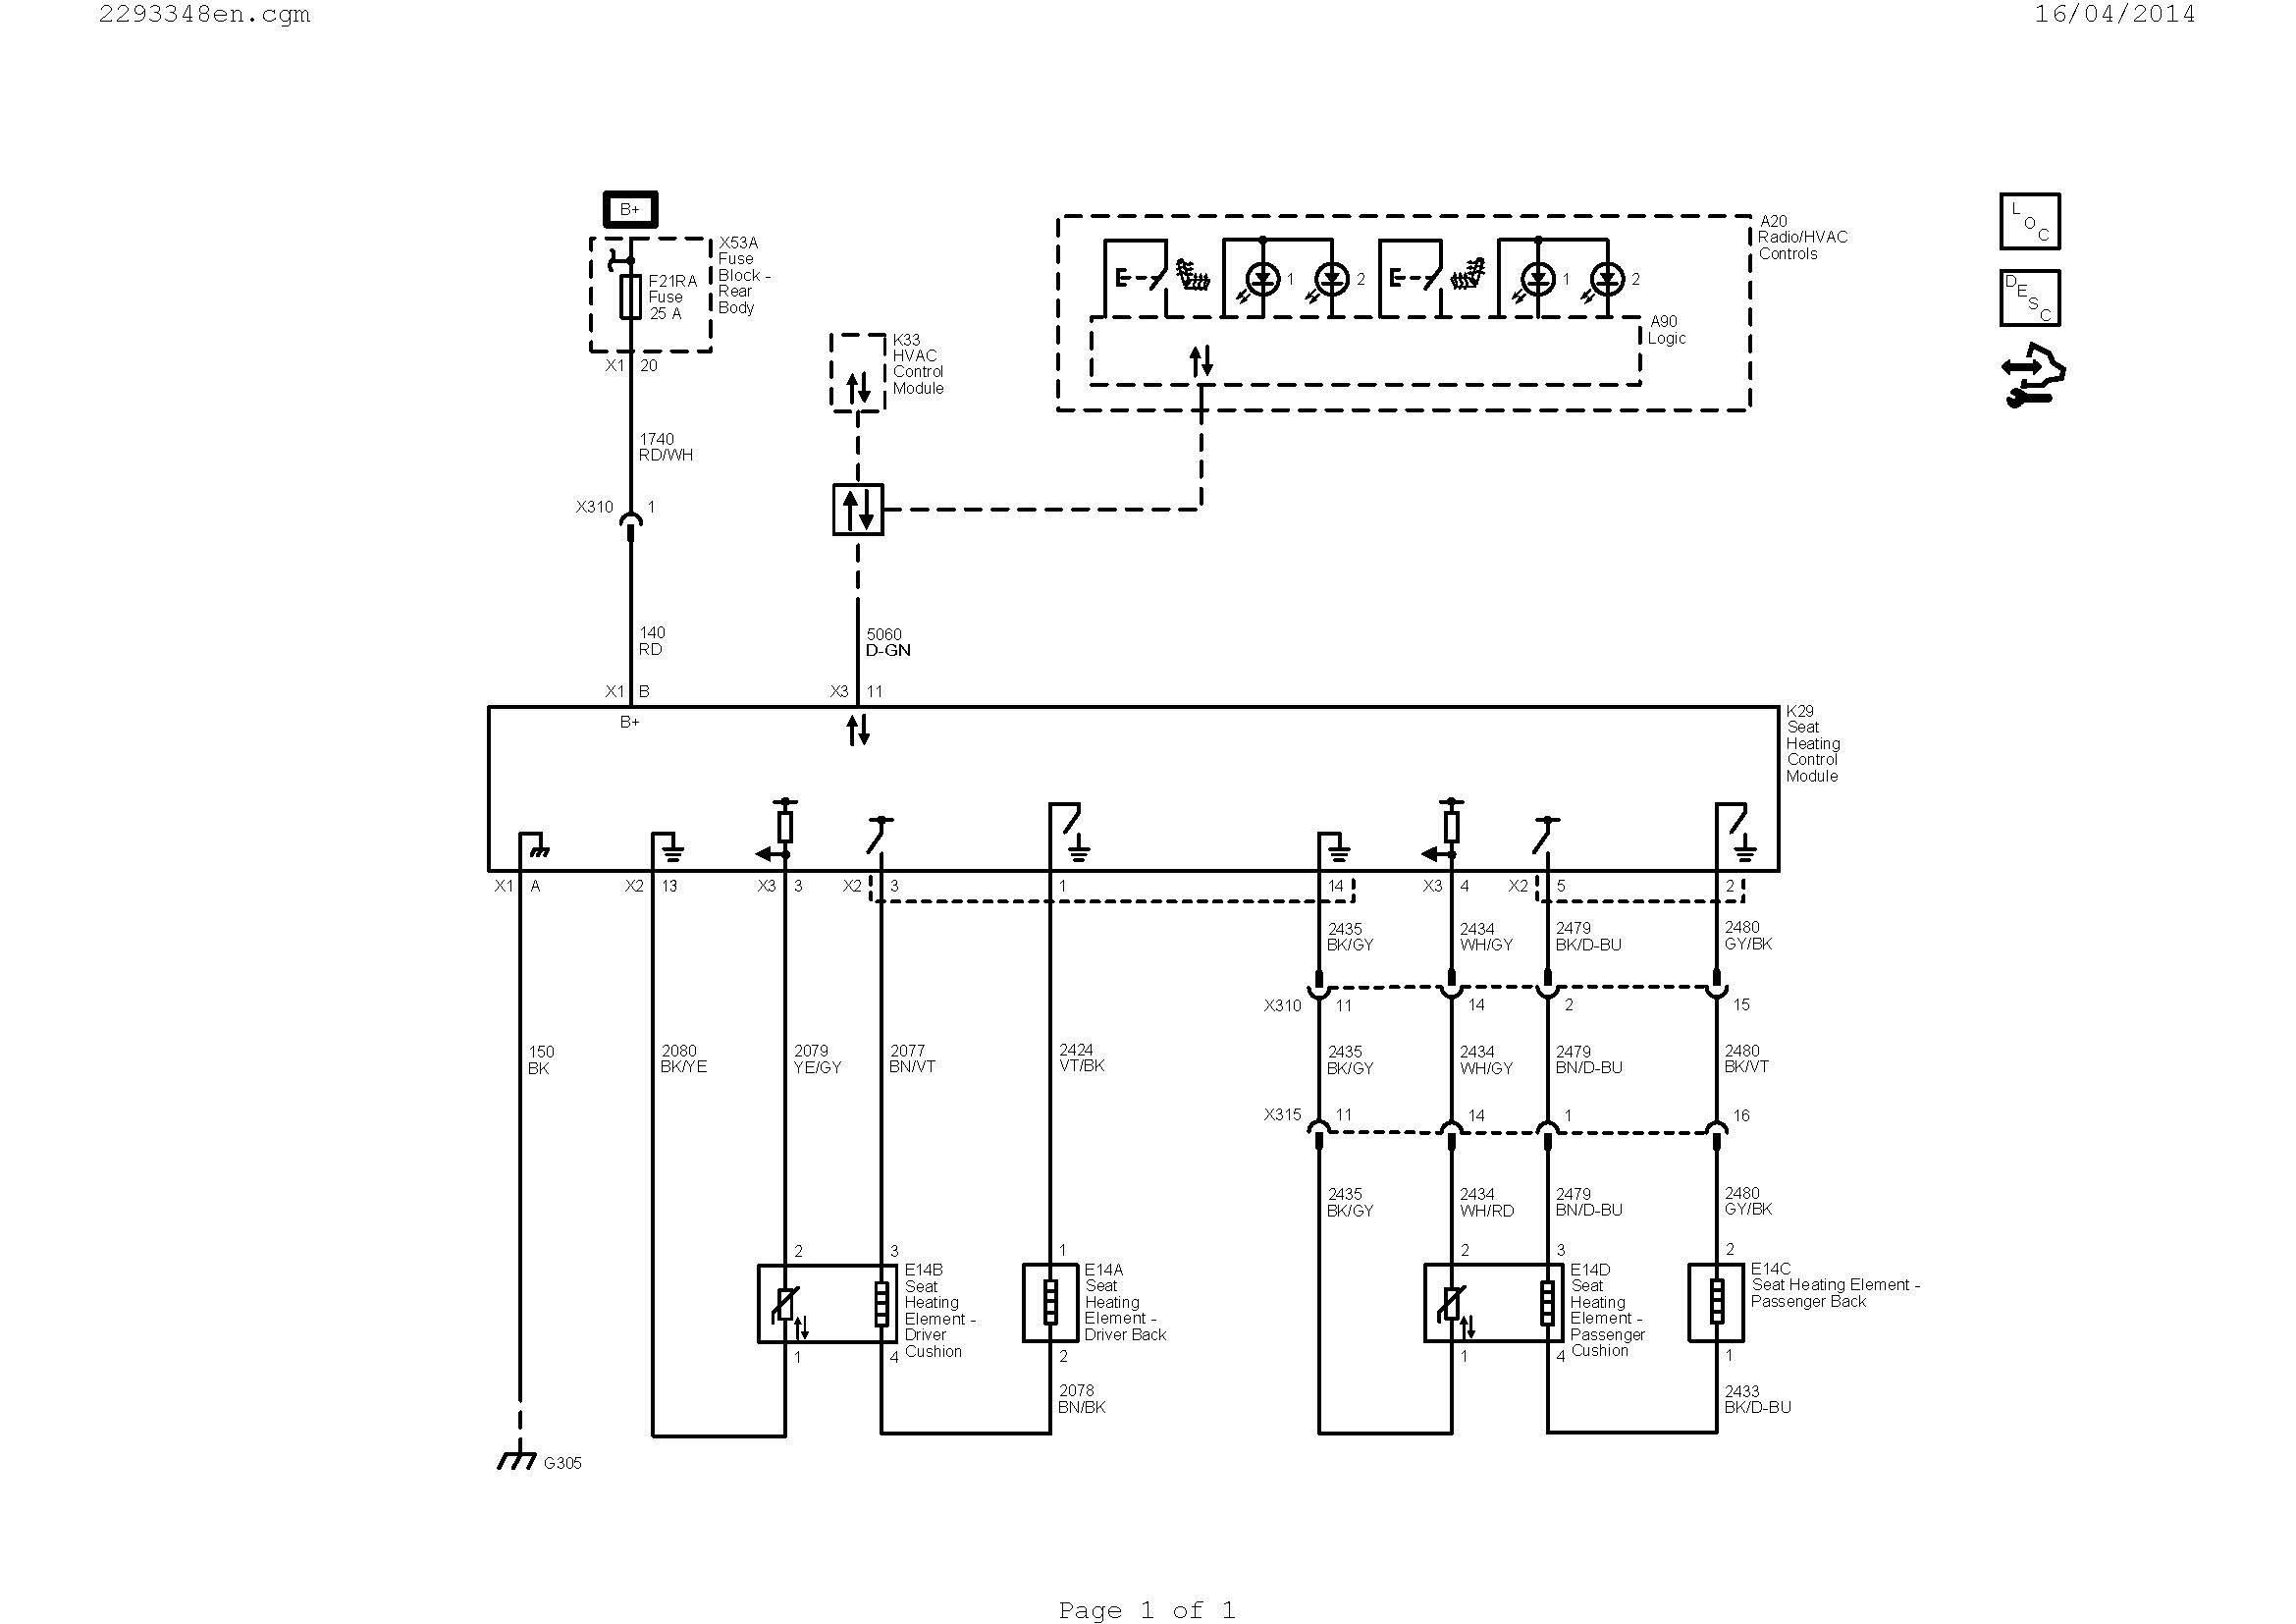 24vdc relay wiring diagram Download-hvac relay wiring diagram Collection Wiring Diagram For Changeover Relay Inspirationa Wiring Diagram Ac Valid DOWNLOAD Wiring Diagram 6-l